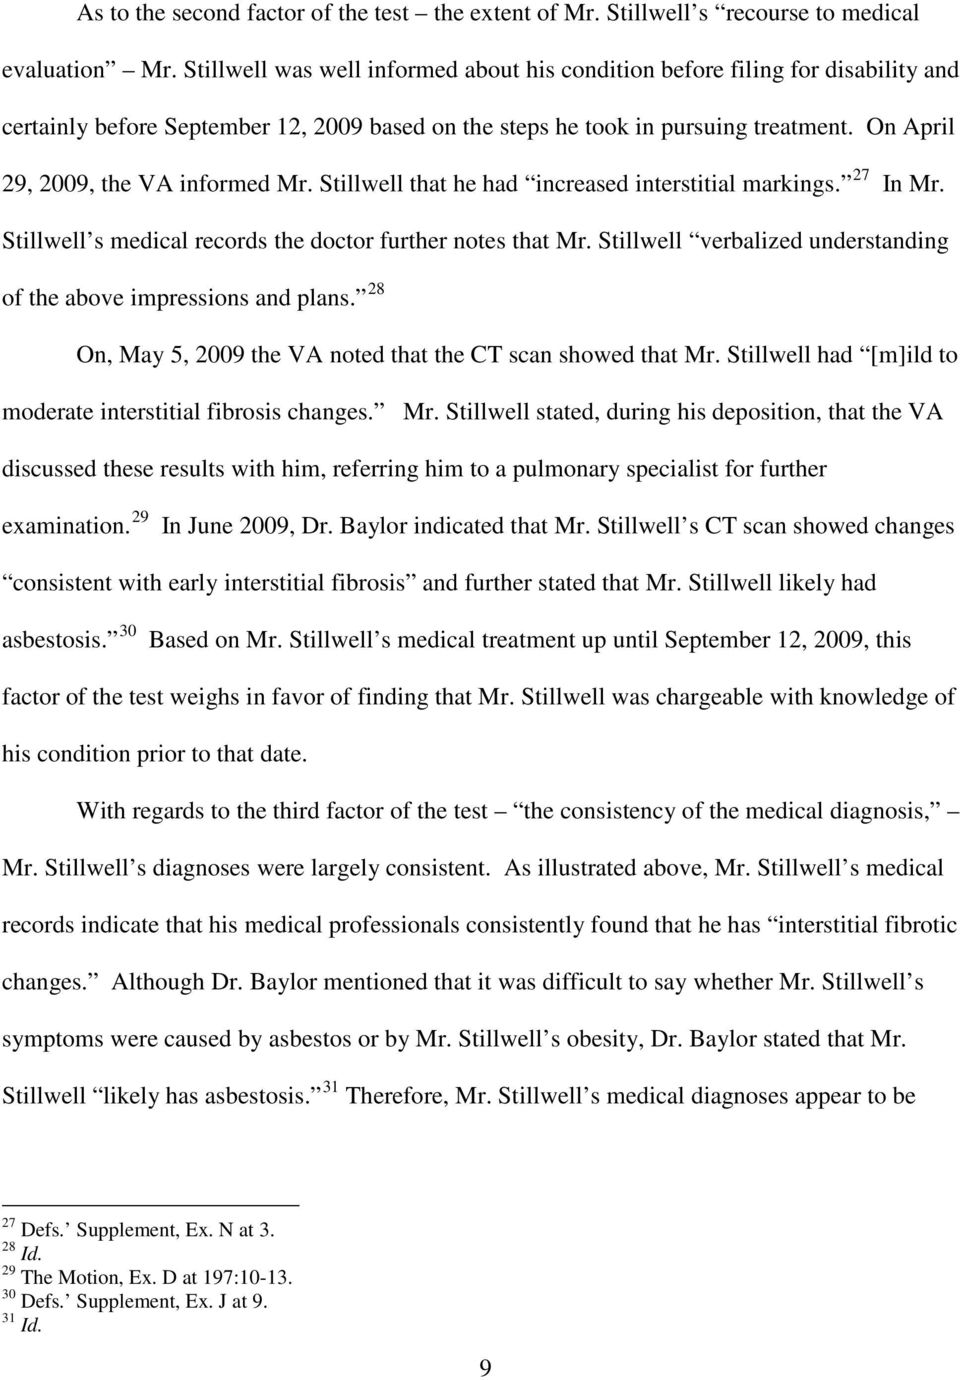 On April 29, 2009, the VA informed Mr. Stillwell that he had increased interstitial markings. 27 In Mr. Stillwell s medical records the doctor further notes that Mr.